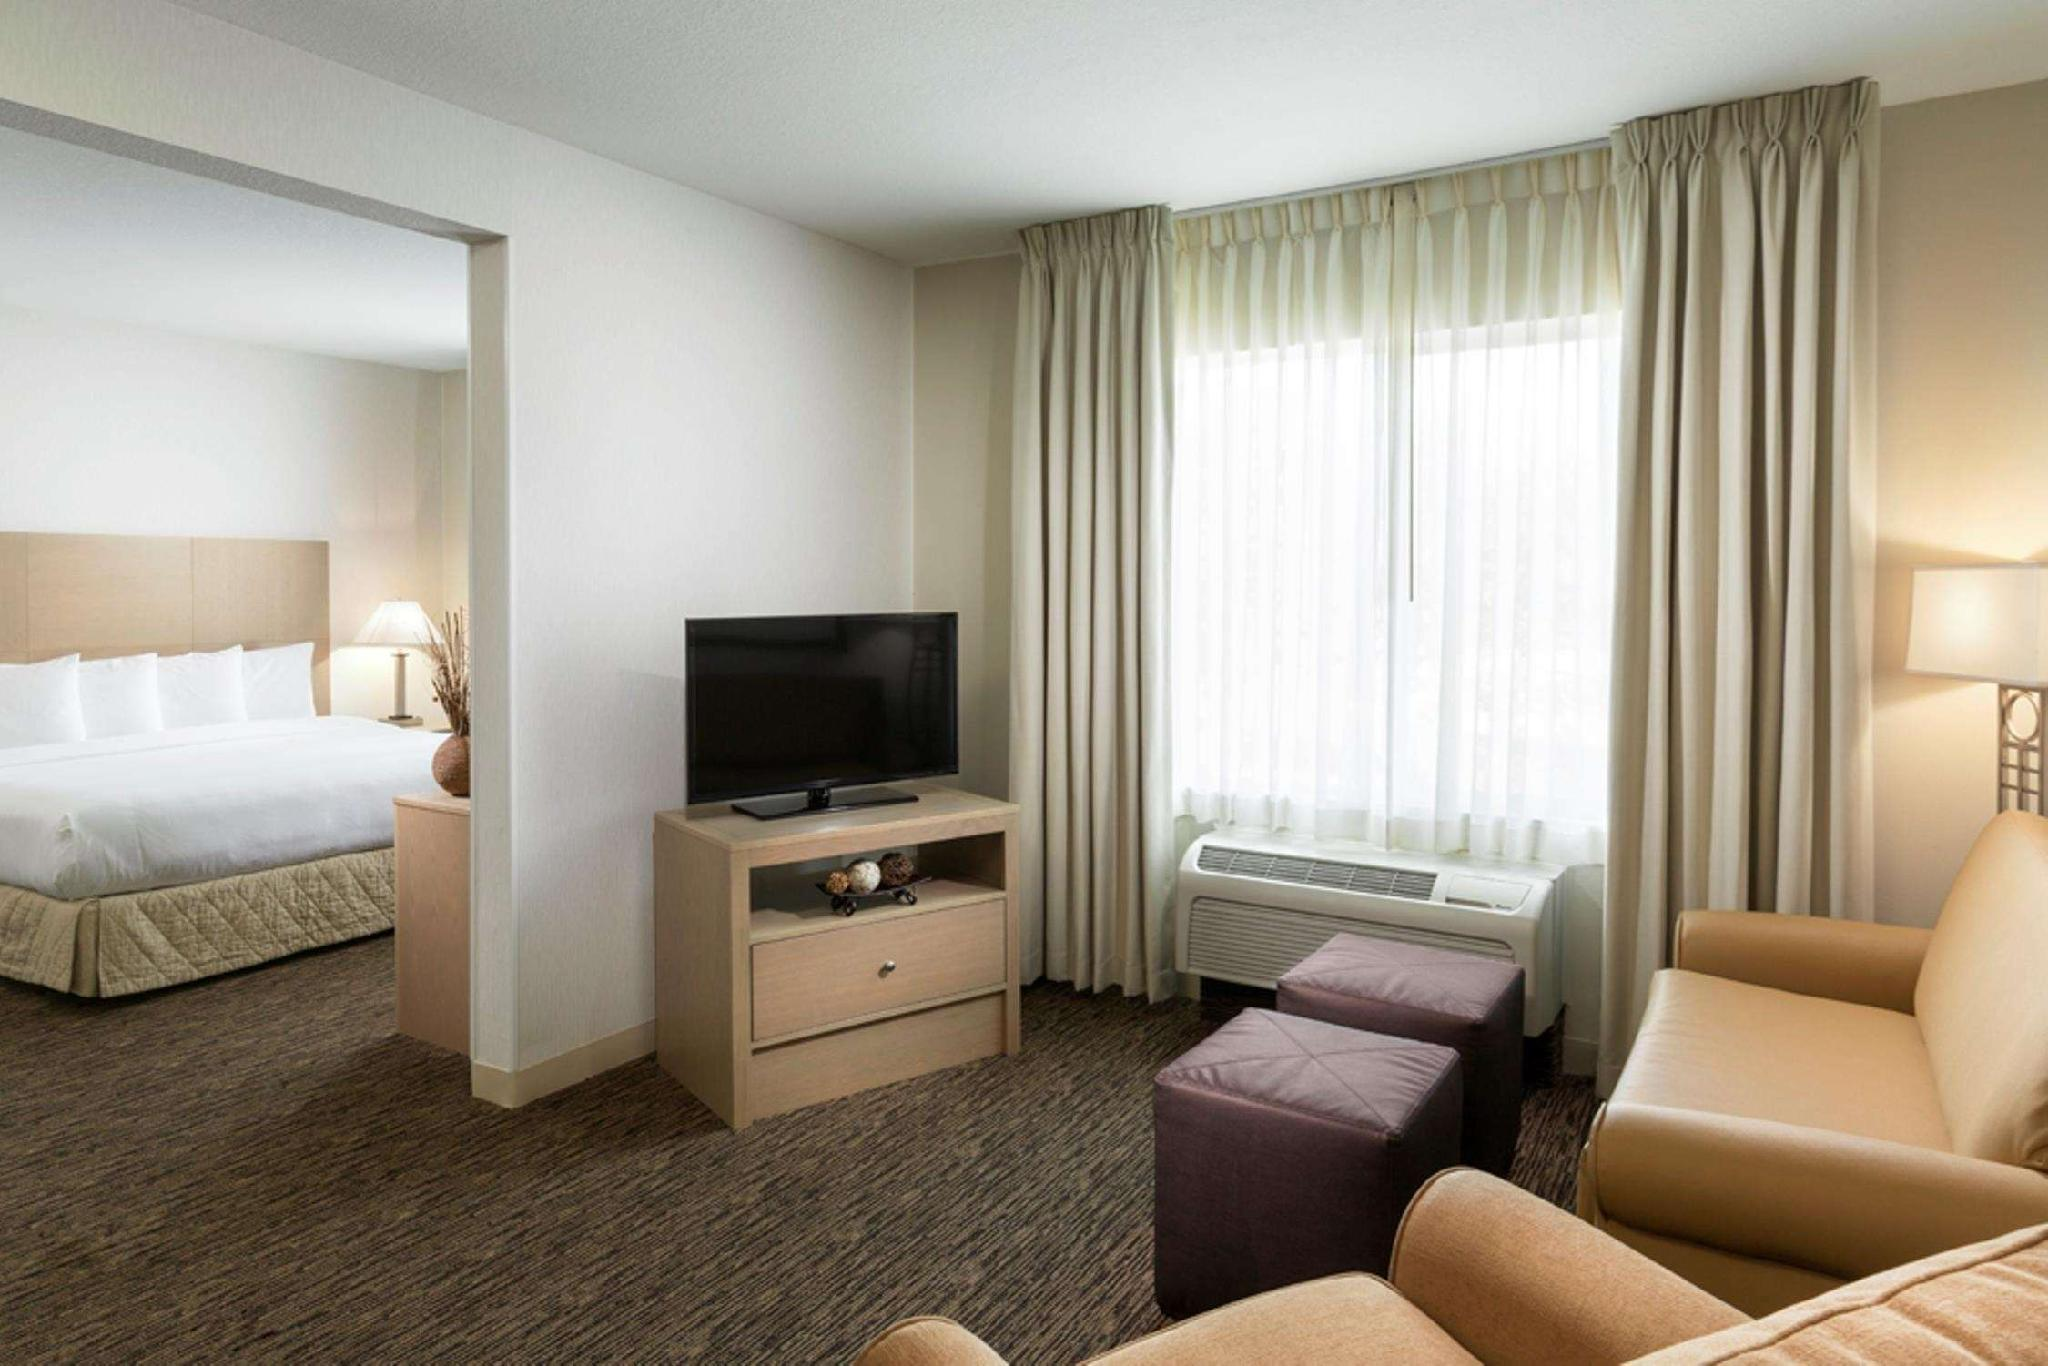 Doubletree by Hilton Vancouver in Vancouver (WA) - Room